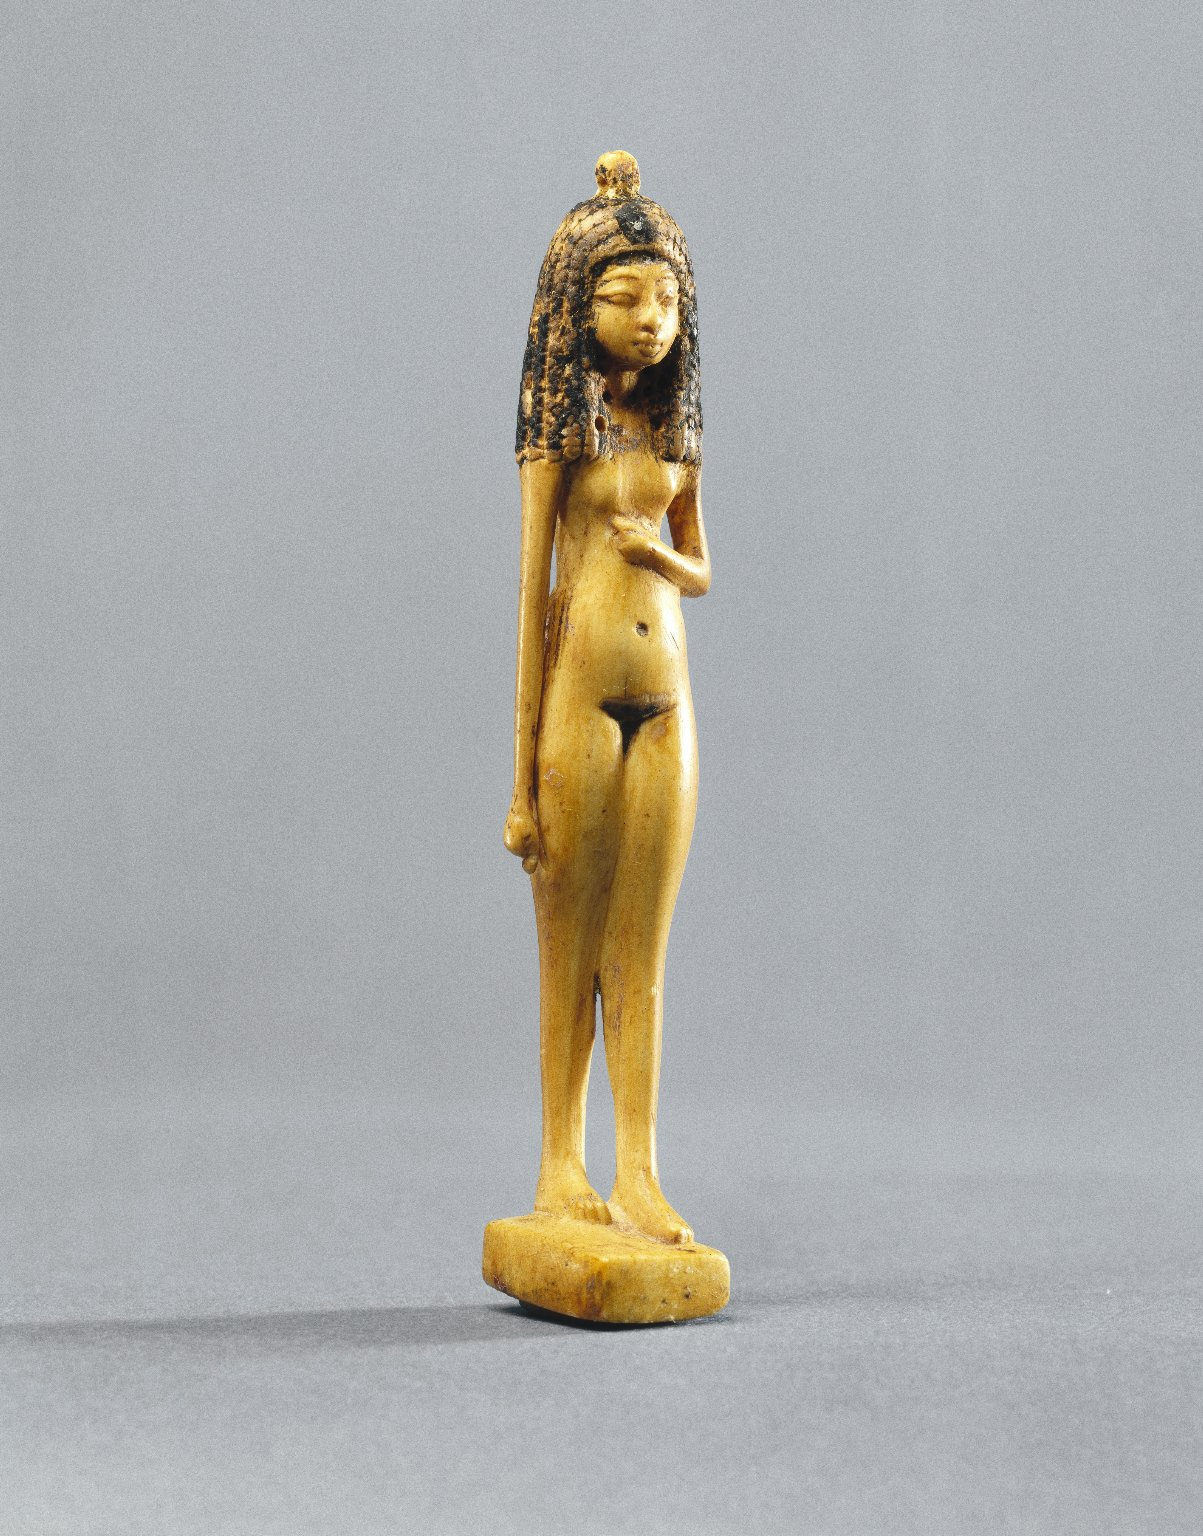 Egyptian Statuette of a Nude Girl